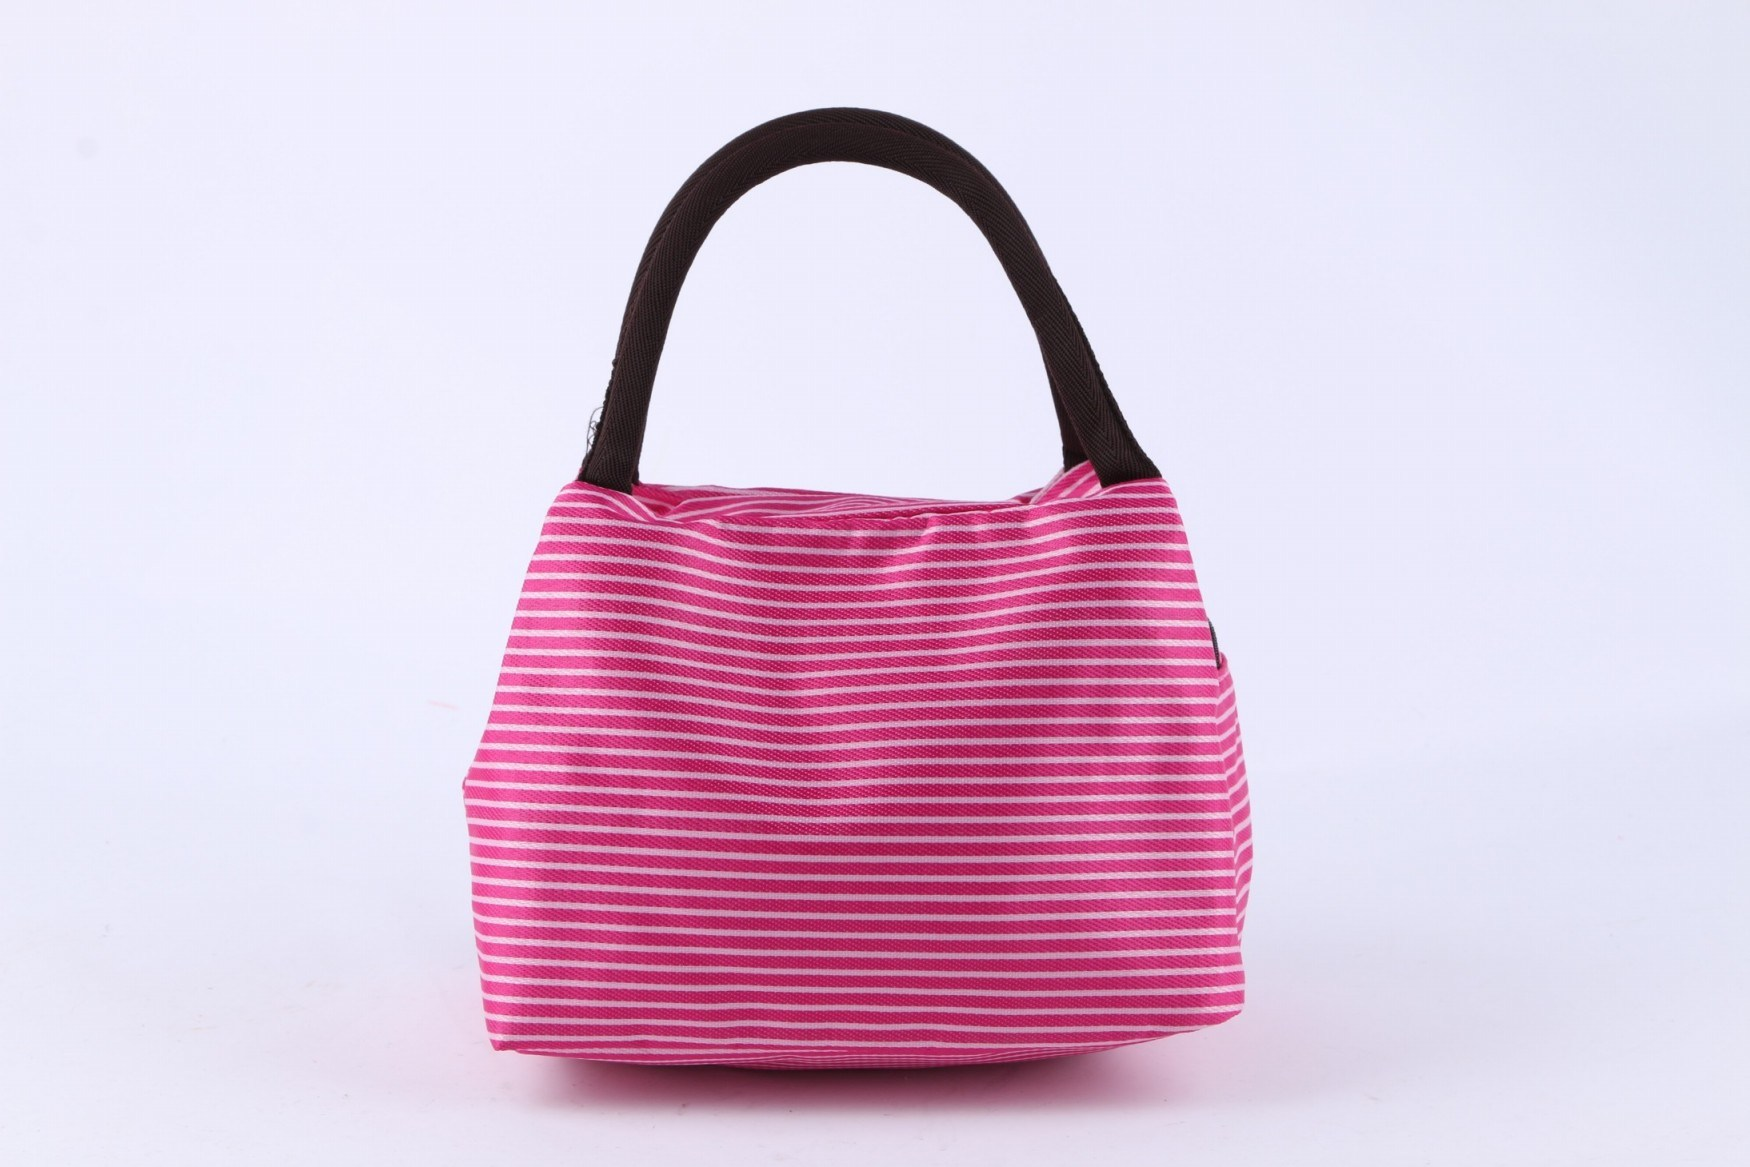 Promotional Factory Direct Sale Pink Stripped Lunch Bag Handbag Fashion